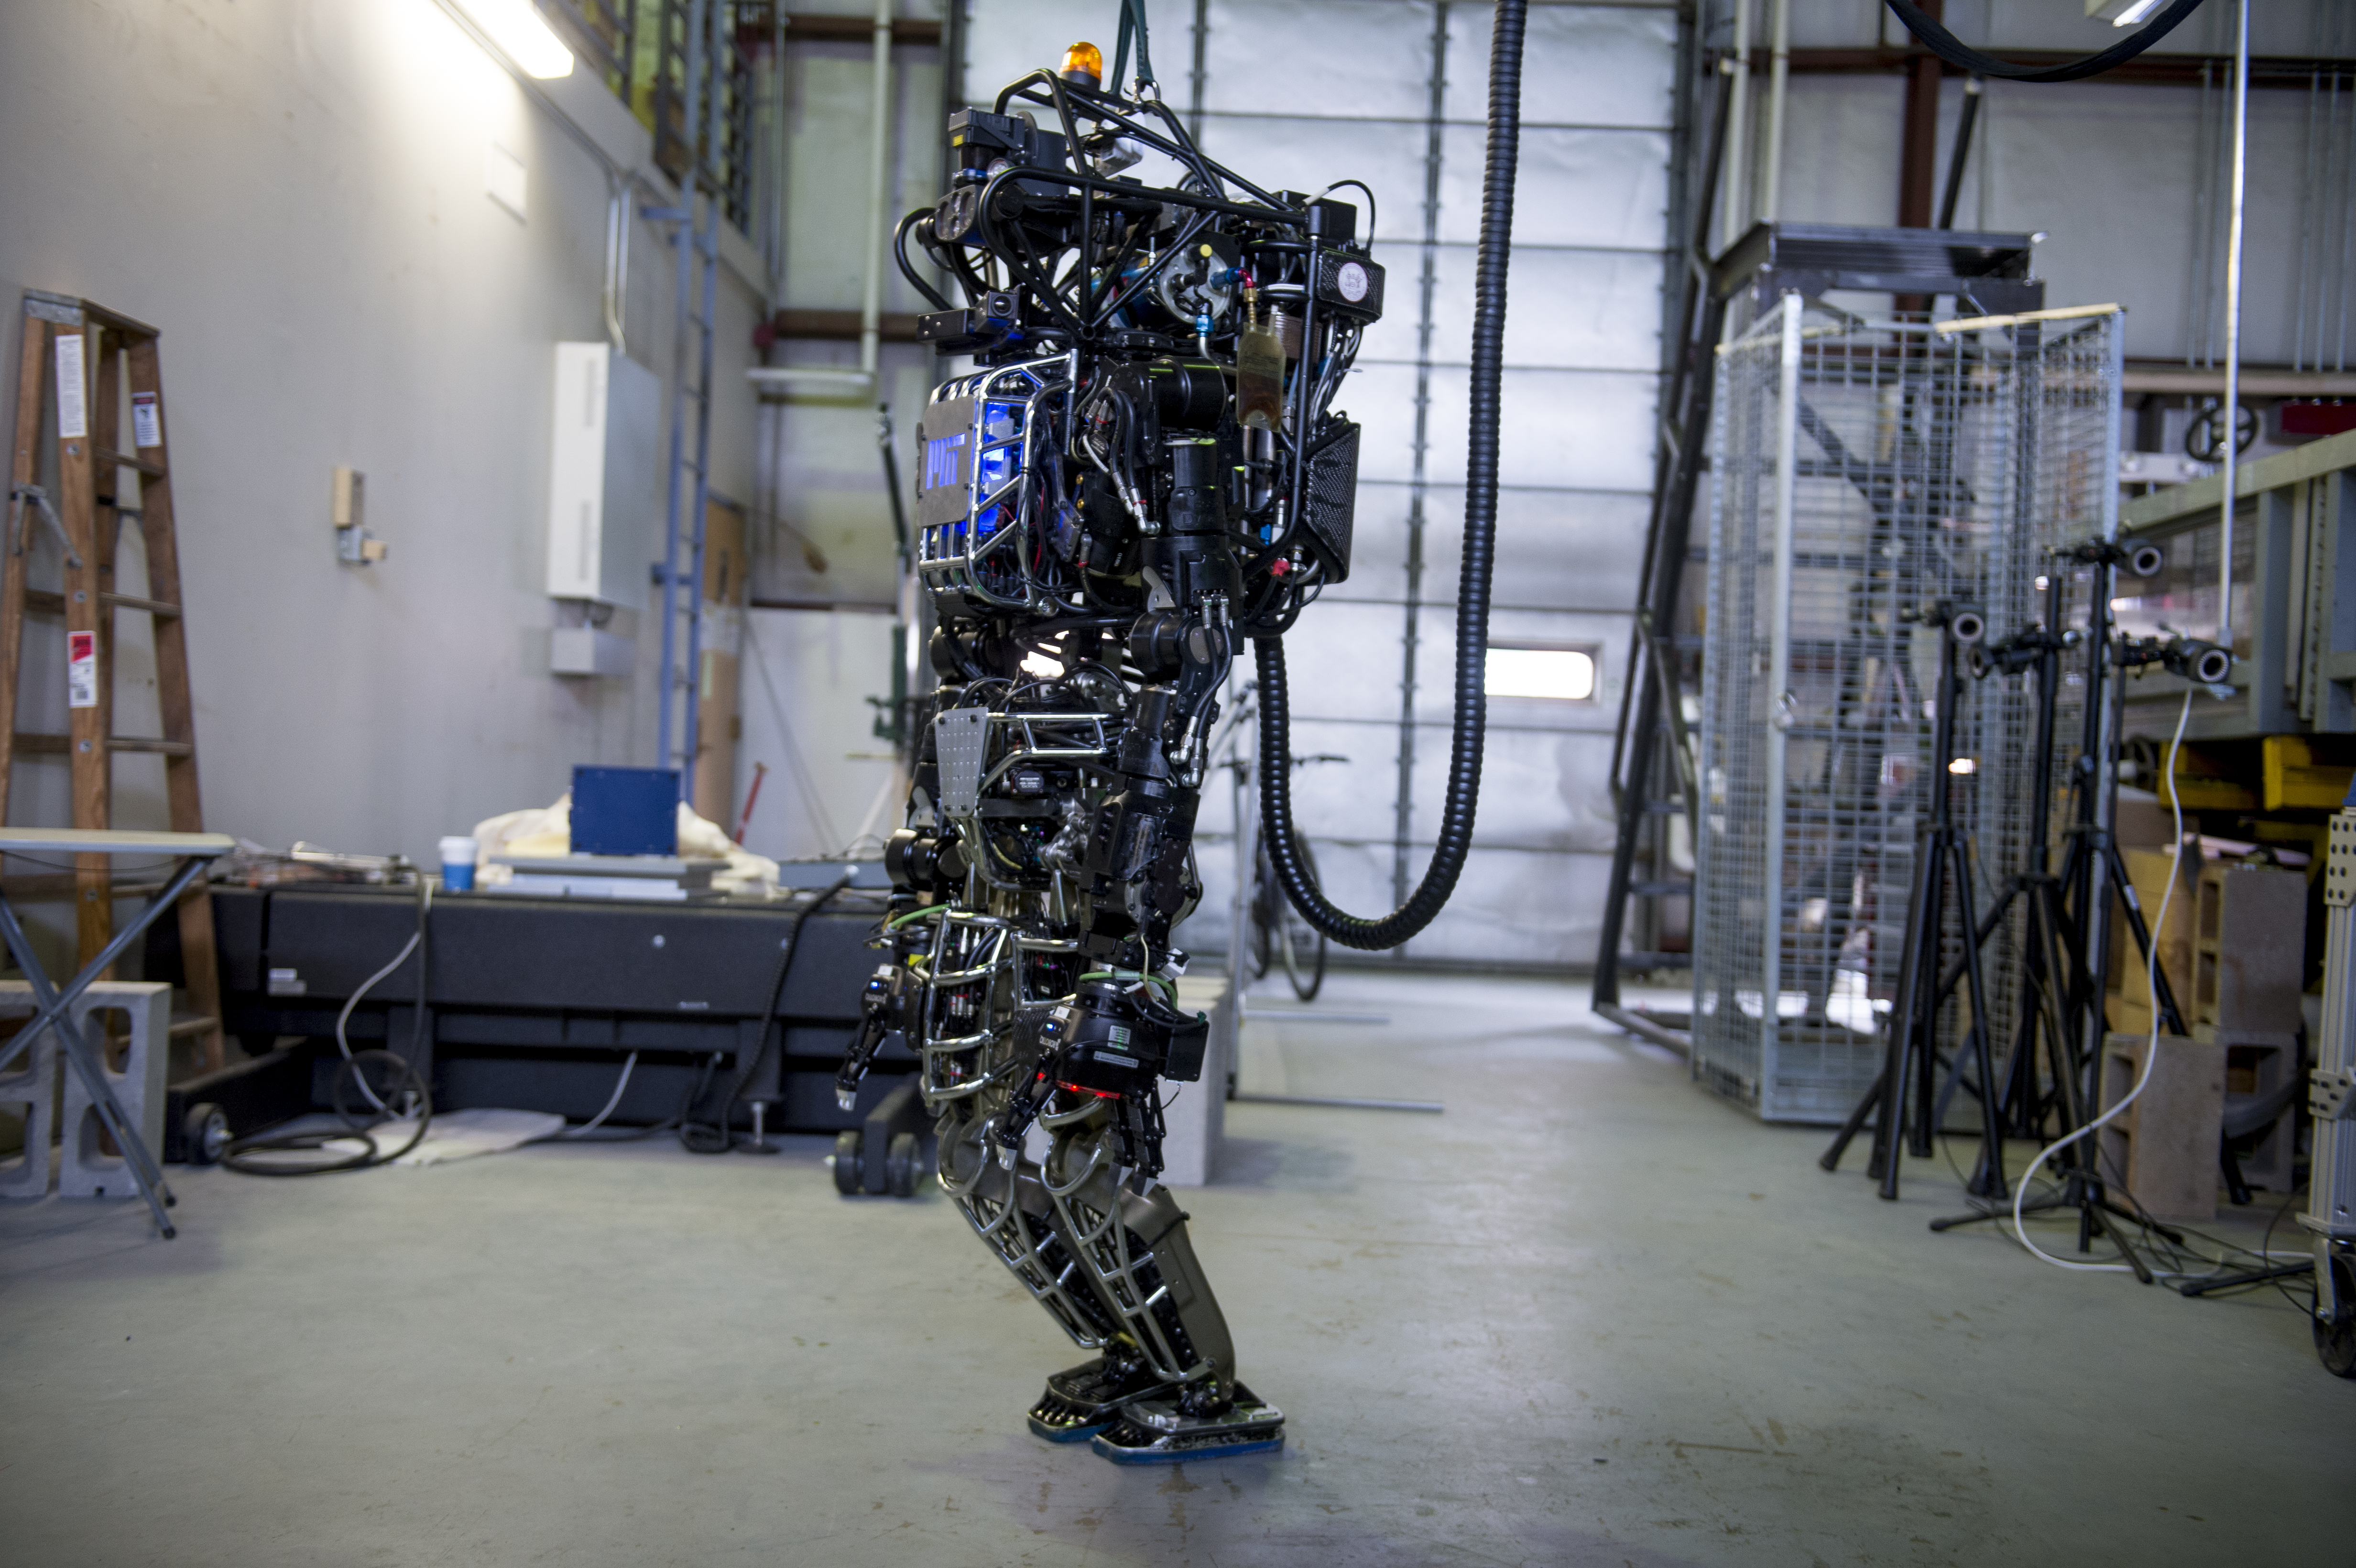 The capabilities of the Atlas robot are demonstrated during the Massachusetts Institute of Technology's Computer Science and Artificial Intelligence Laboratory's Demo Day on April 6, 2013 in Boston, Massachusetts.